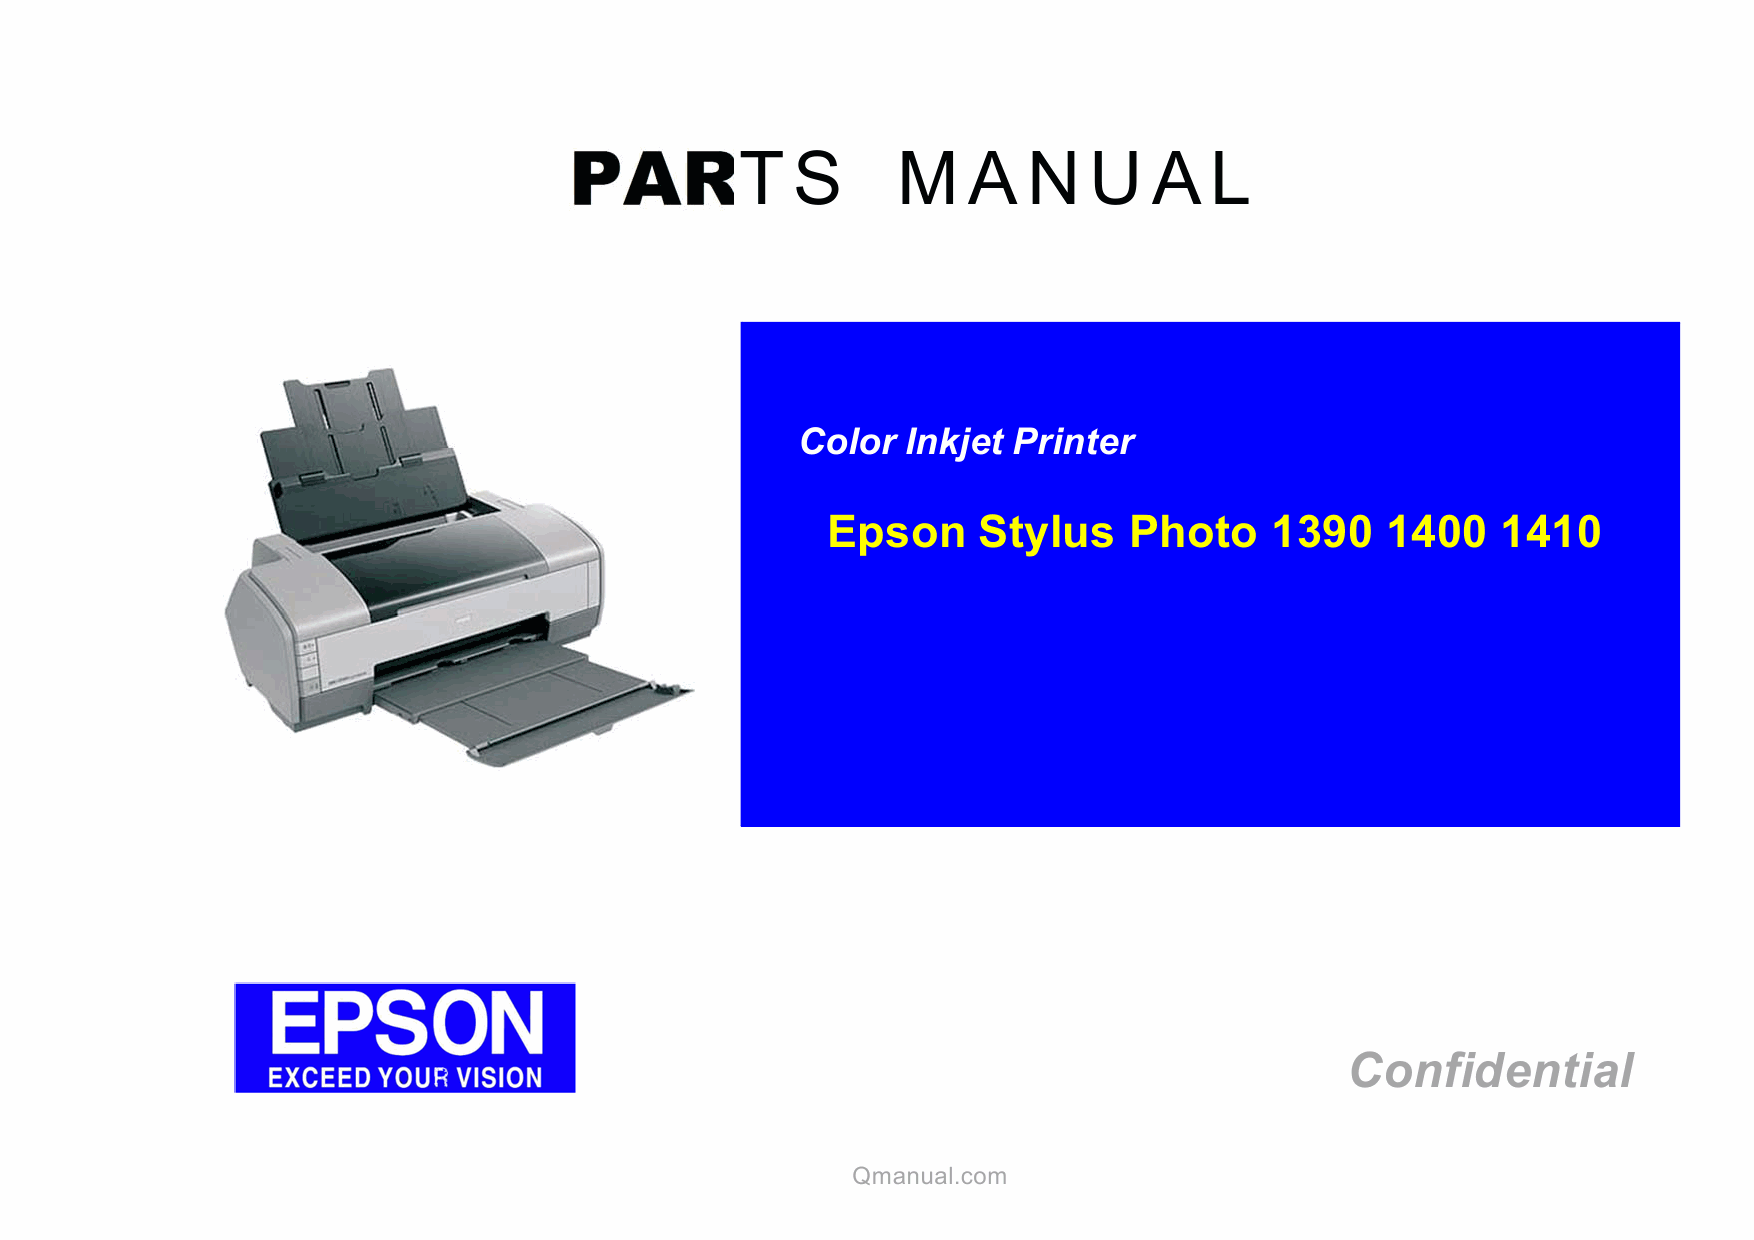 epson stylusphoto 1390 1400 1410 parts manual rh sdott parts com epson l210 printer troubleshooting guide epson printer troubleshooting guide uk